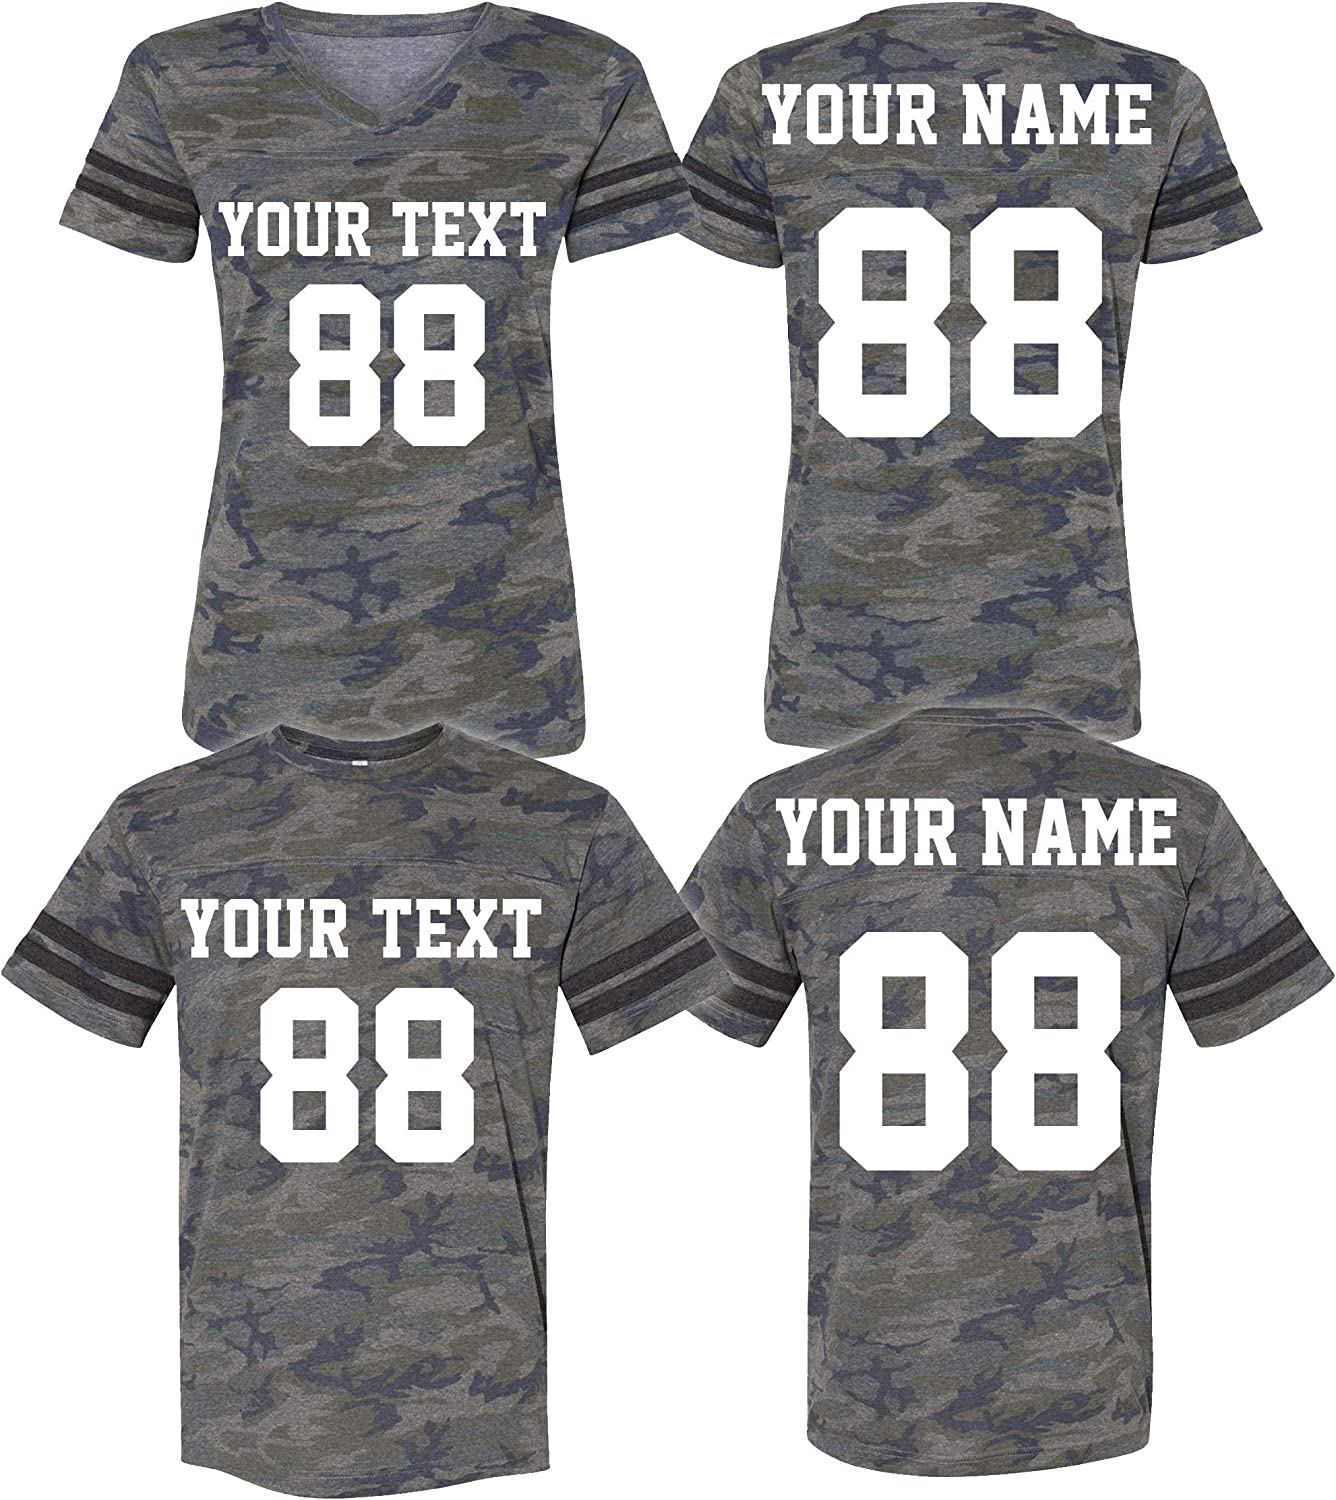 Custom 2 Sided Cotton Jerseys for Men & Women - Personalized Team Uniforms for Casual Outfit